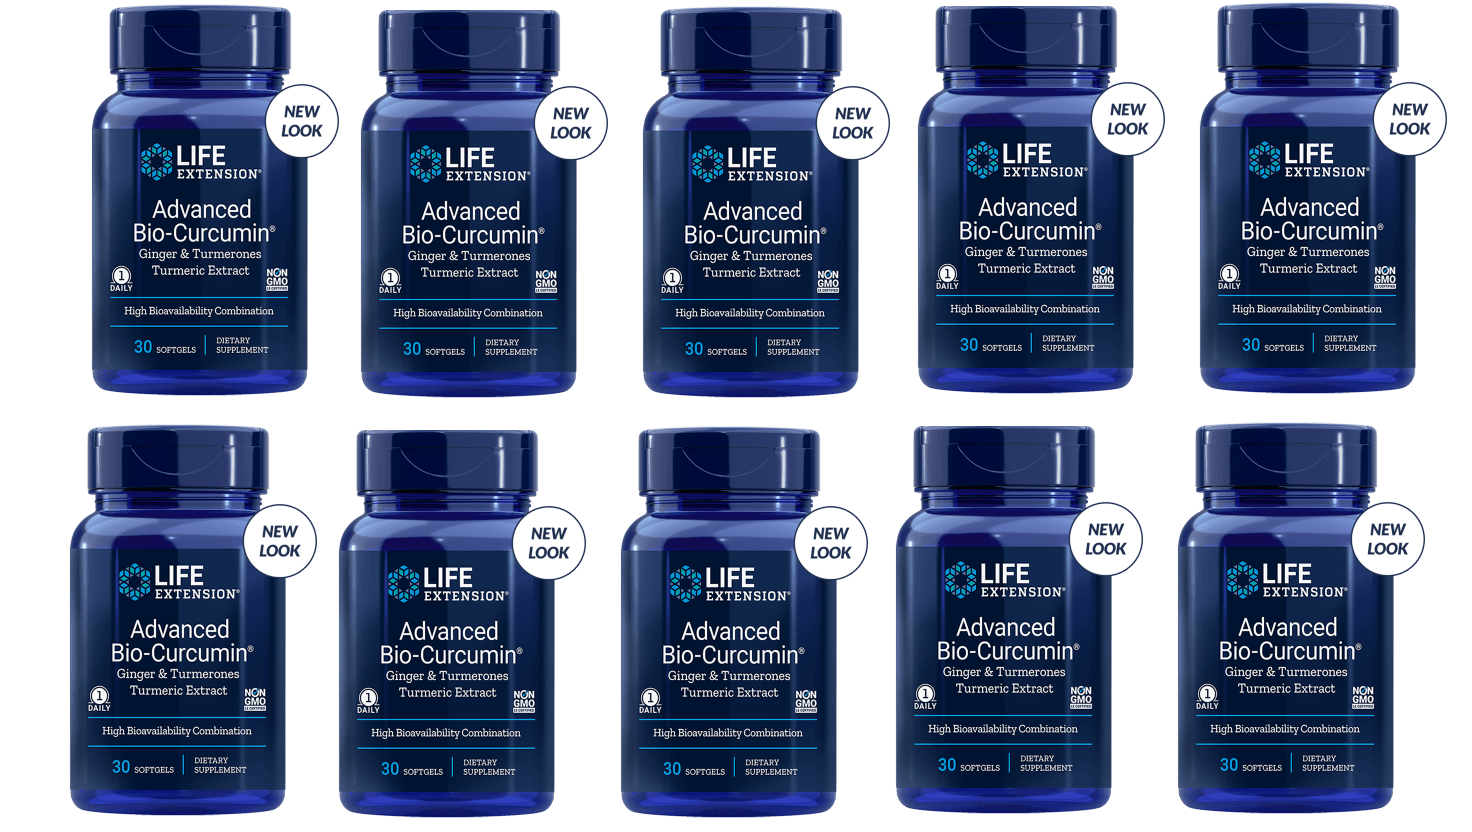 Life Extension Advanced Bio-Curcumin With Ginger & Turmerones, 10-pack